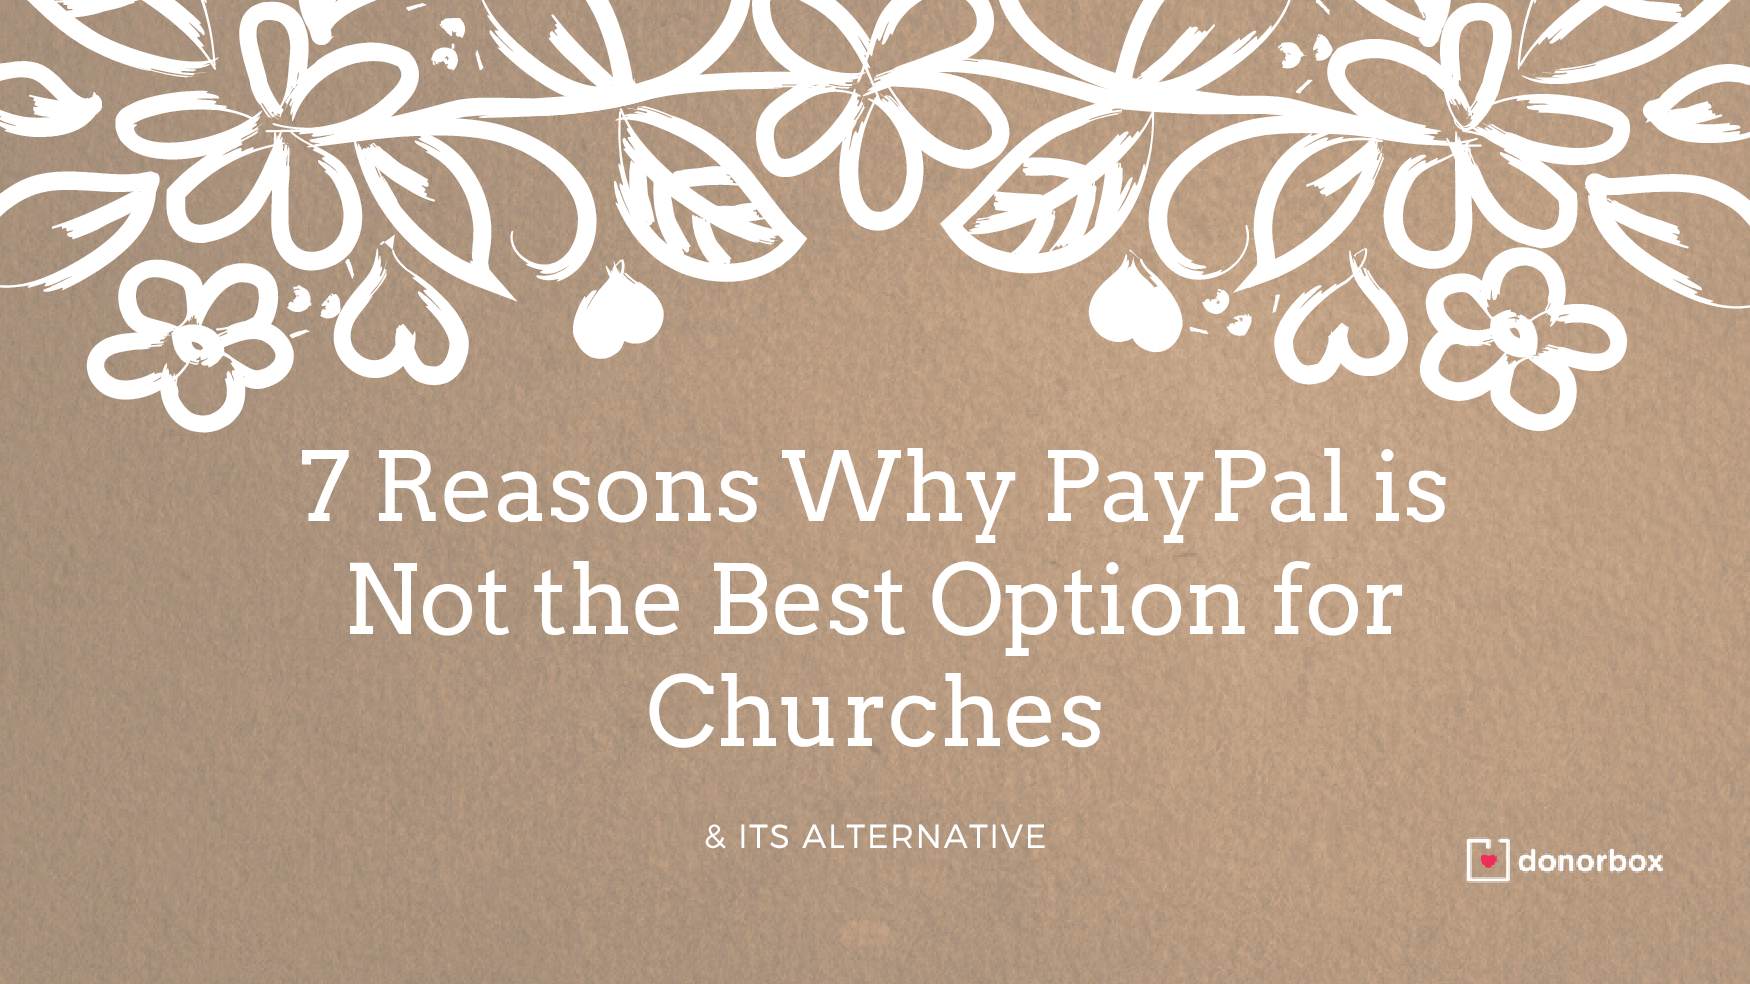 why donorbox is better than paypal for churches